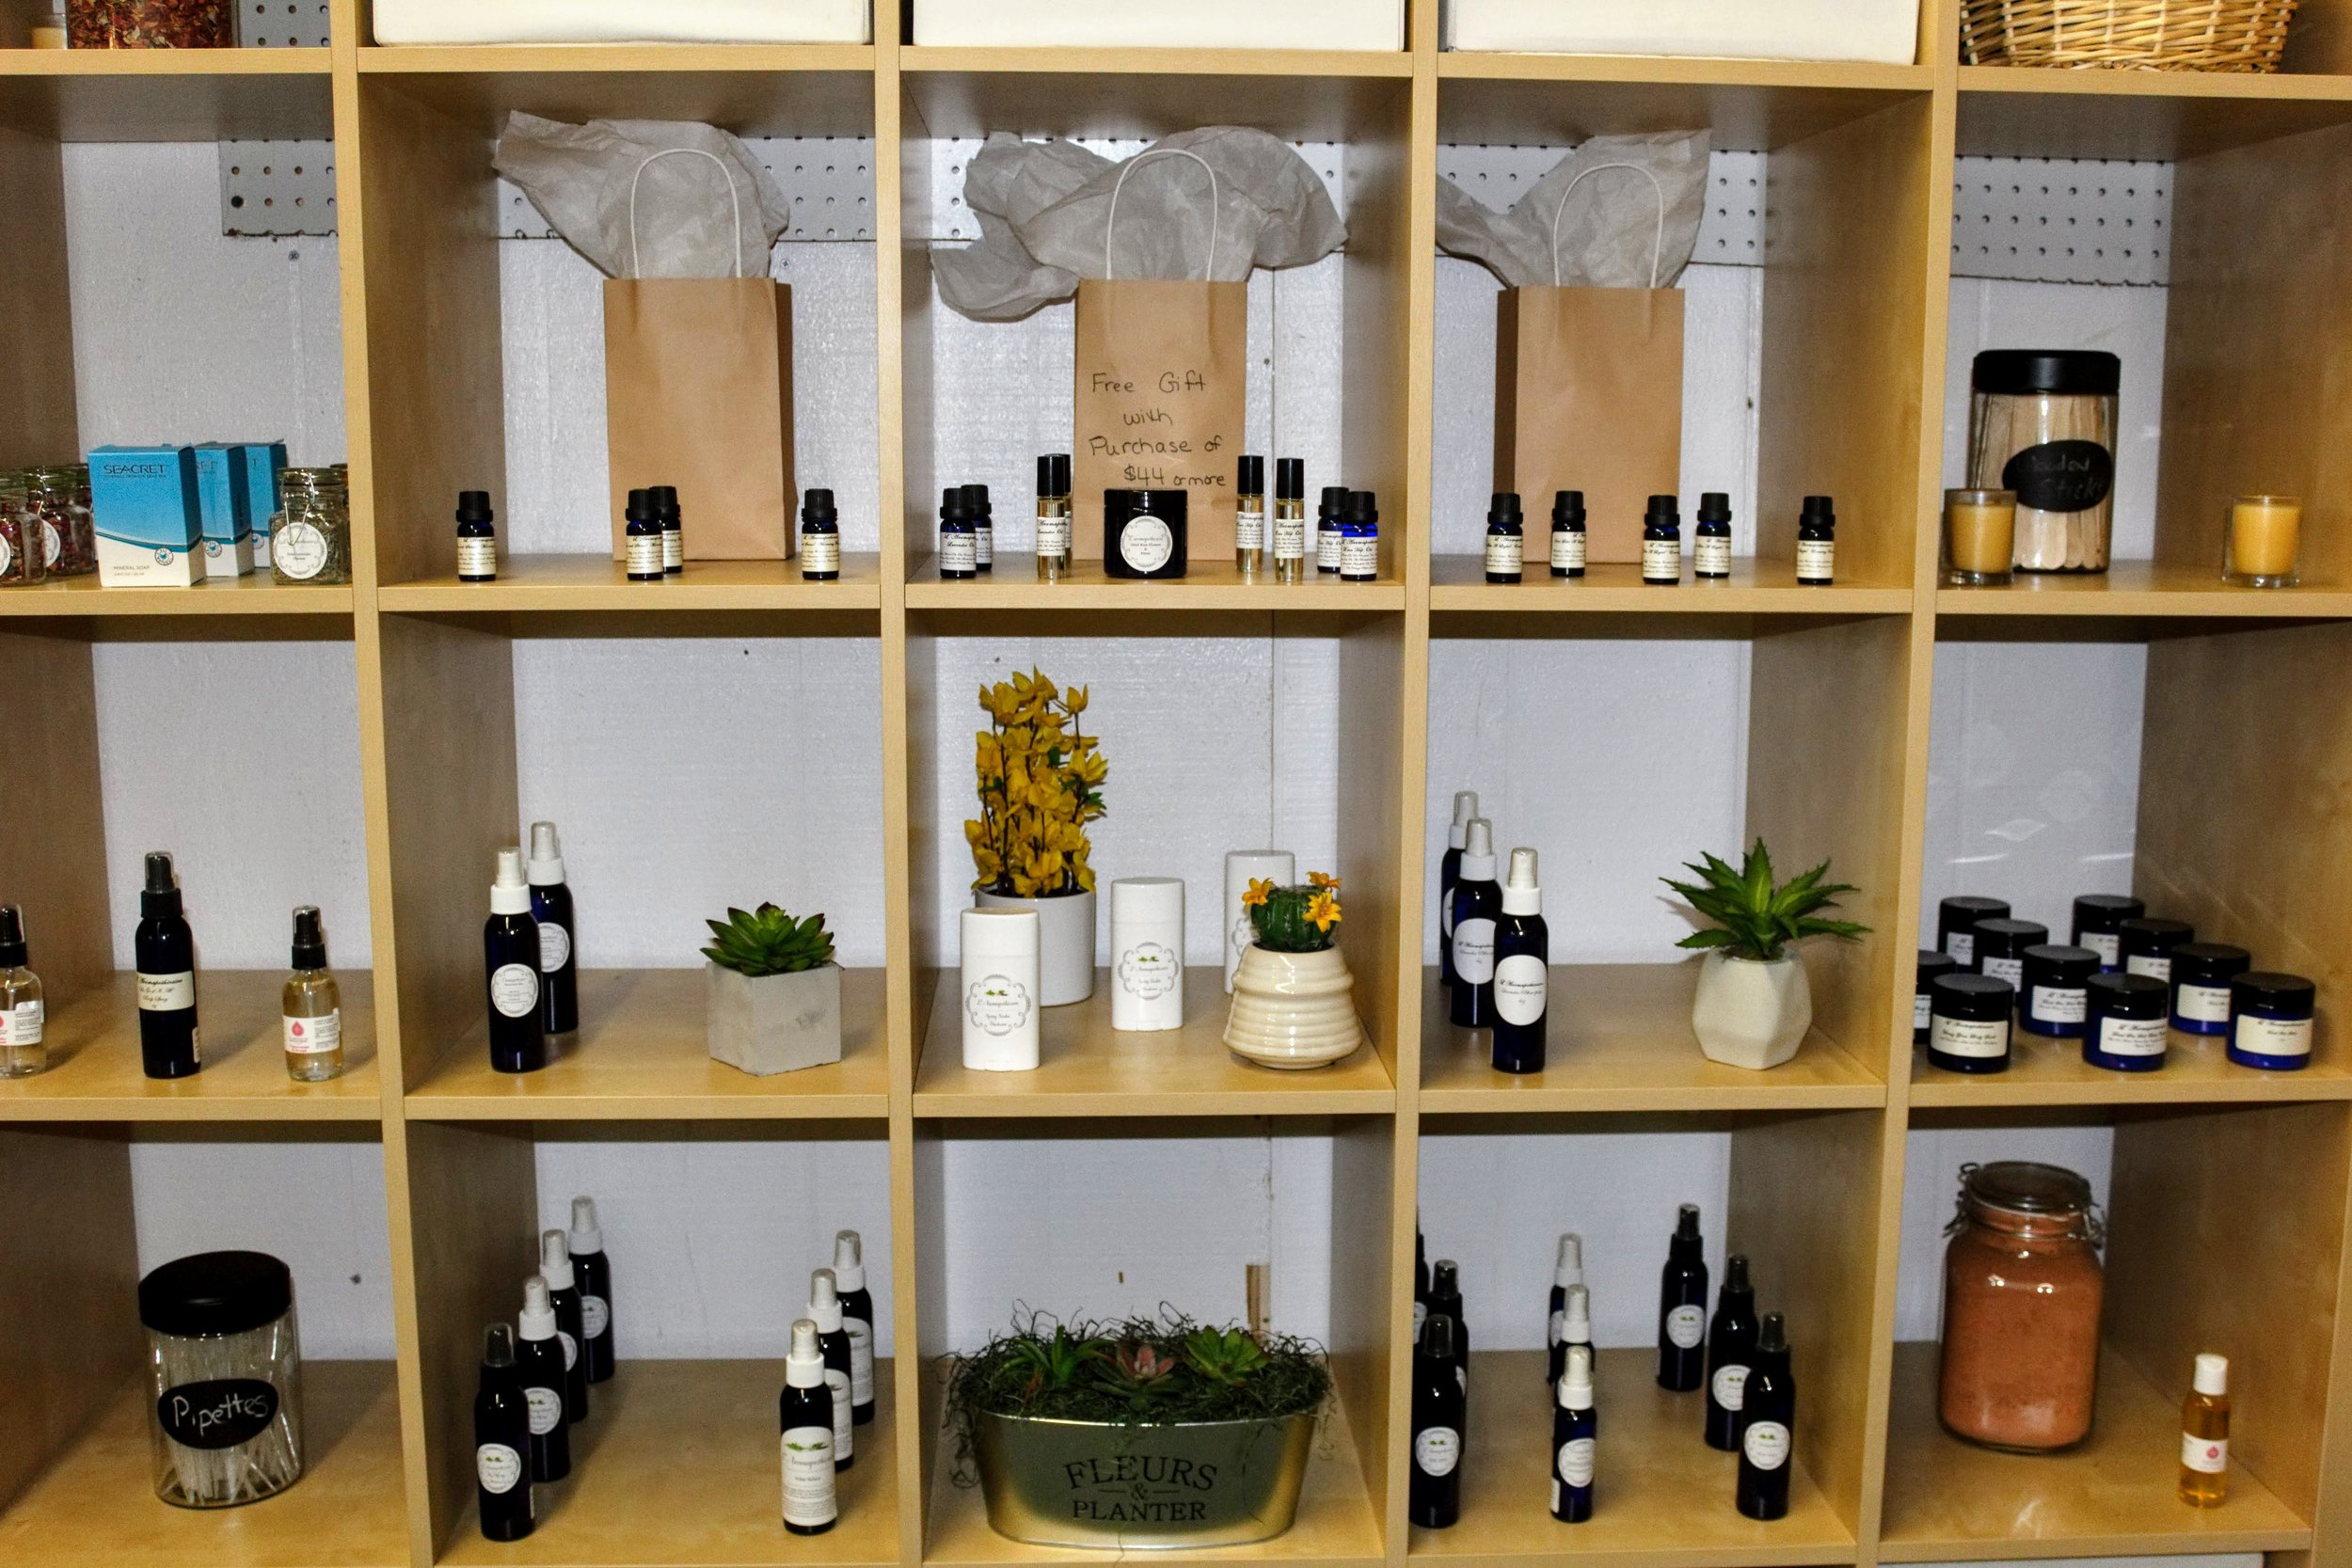 The synergy of science and nature come together at L'Aromapothicaire. It is a holistic approach to health offering high quality essential oils, custom synergy blends, custom bath salts, facial oils, creams, mists and more!